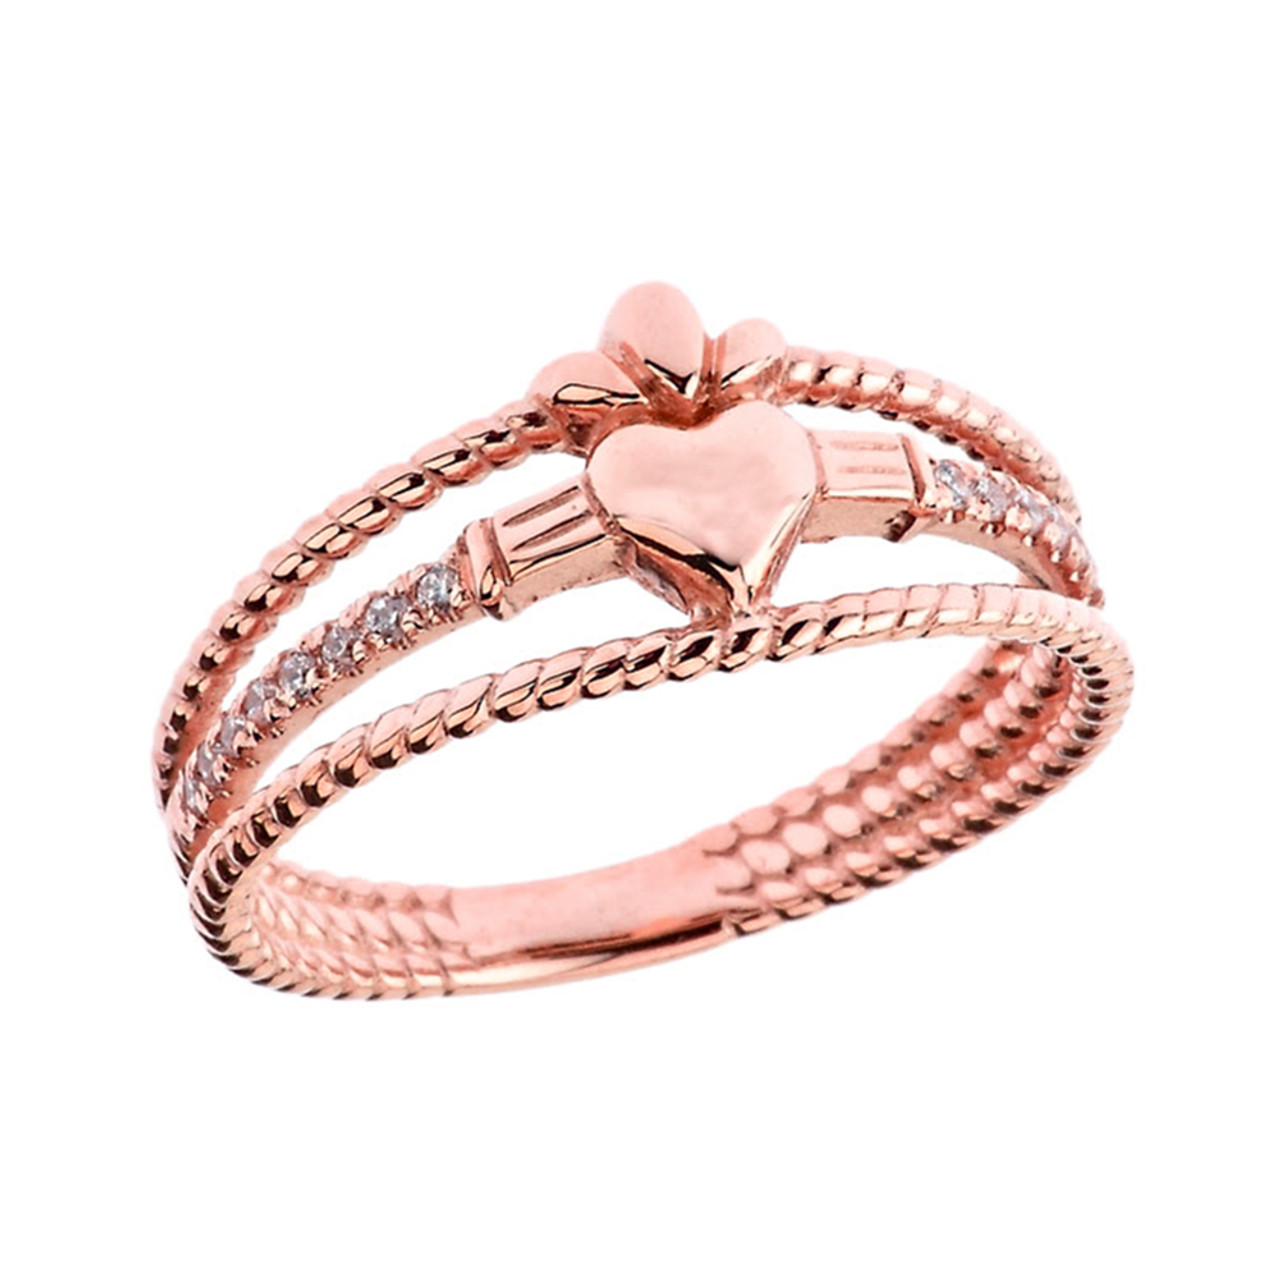 Modern Claddagh Diamond Rope Engagement/Proposal Ring in Rose Gold